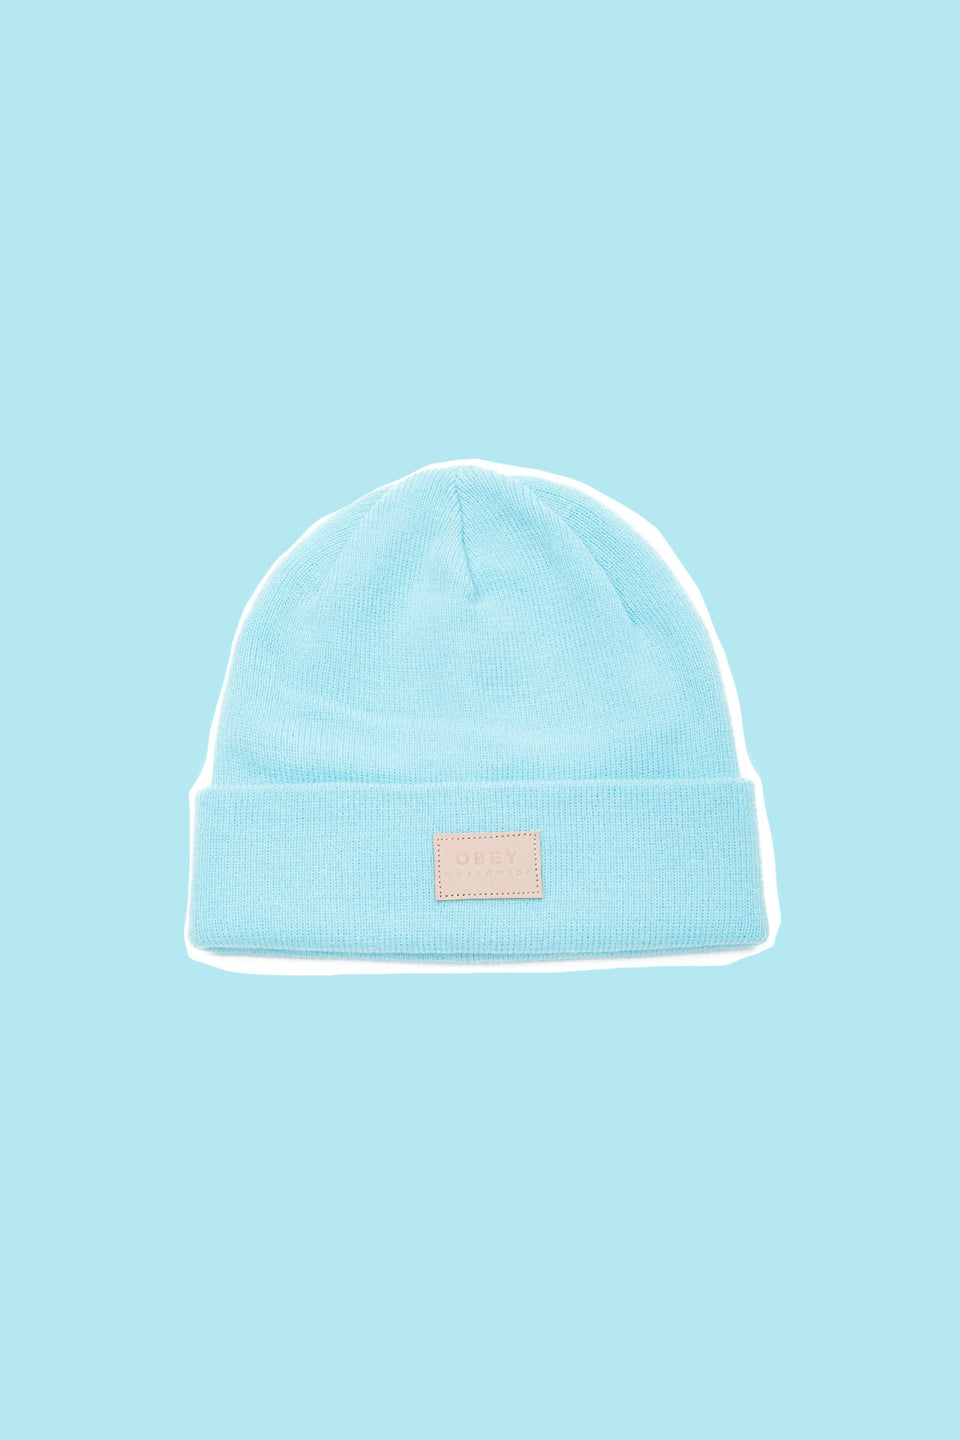 OBEY • Bonnet Briean Bleu Ciel